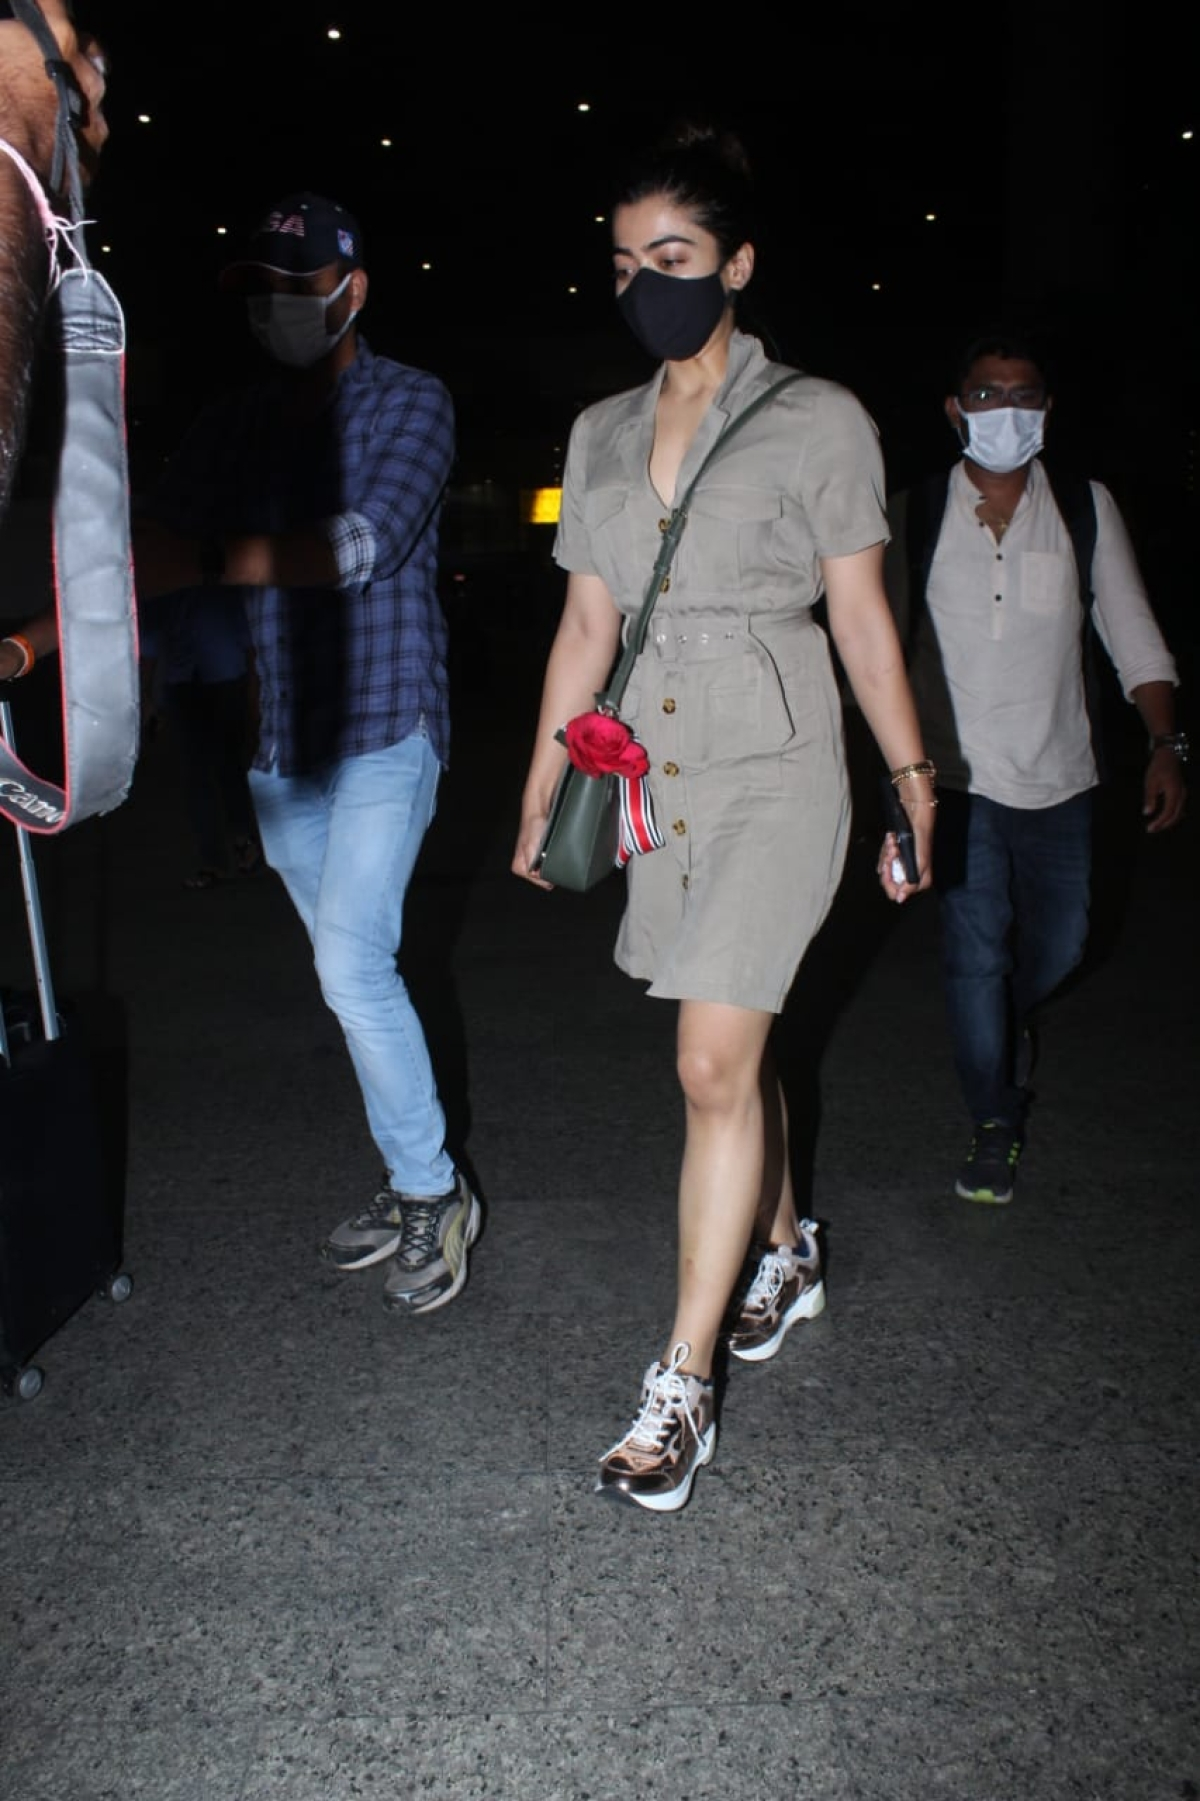 In Pics: Janhvi Kapoor, Govinda, Rashmika Mandanna and others spotted at Mumbai airport